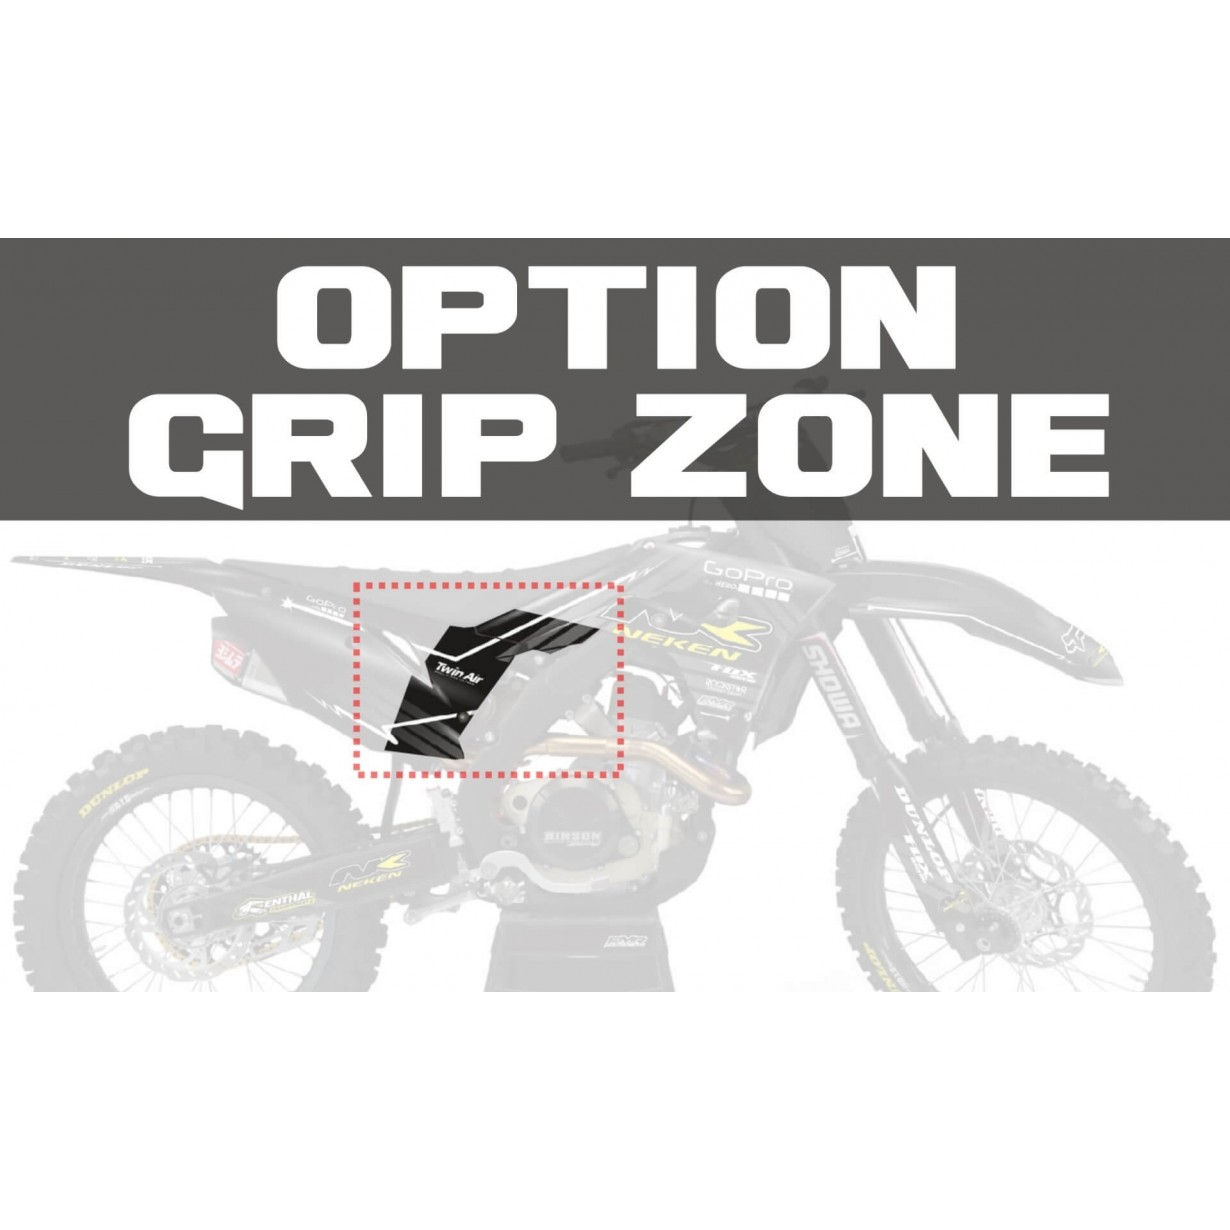 Option GRIP Zone Transparent